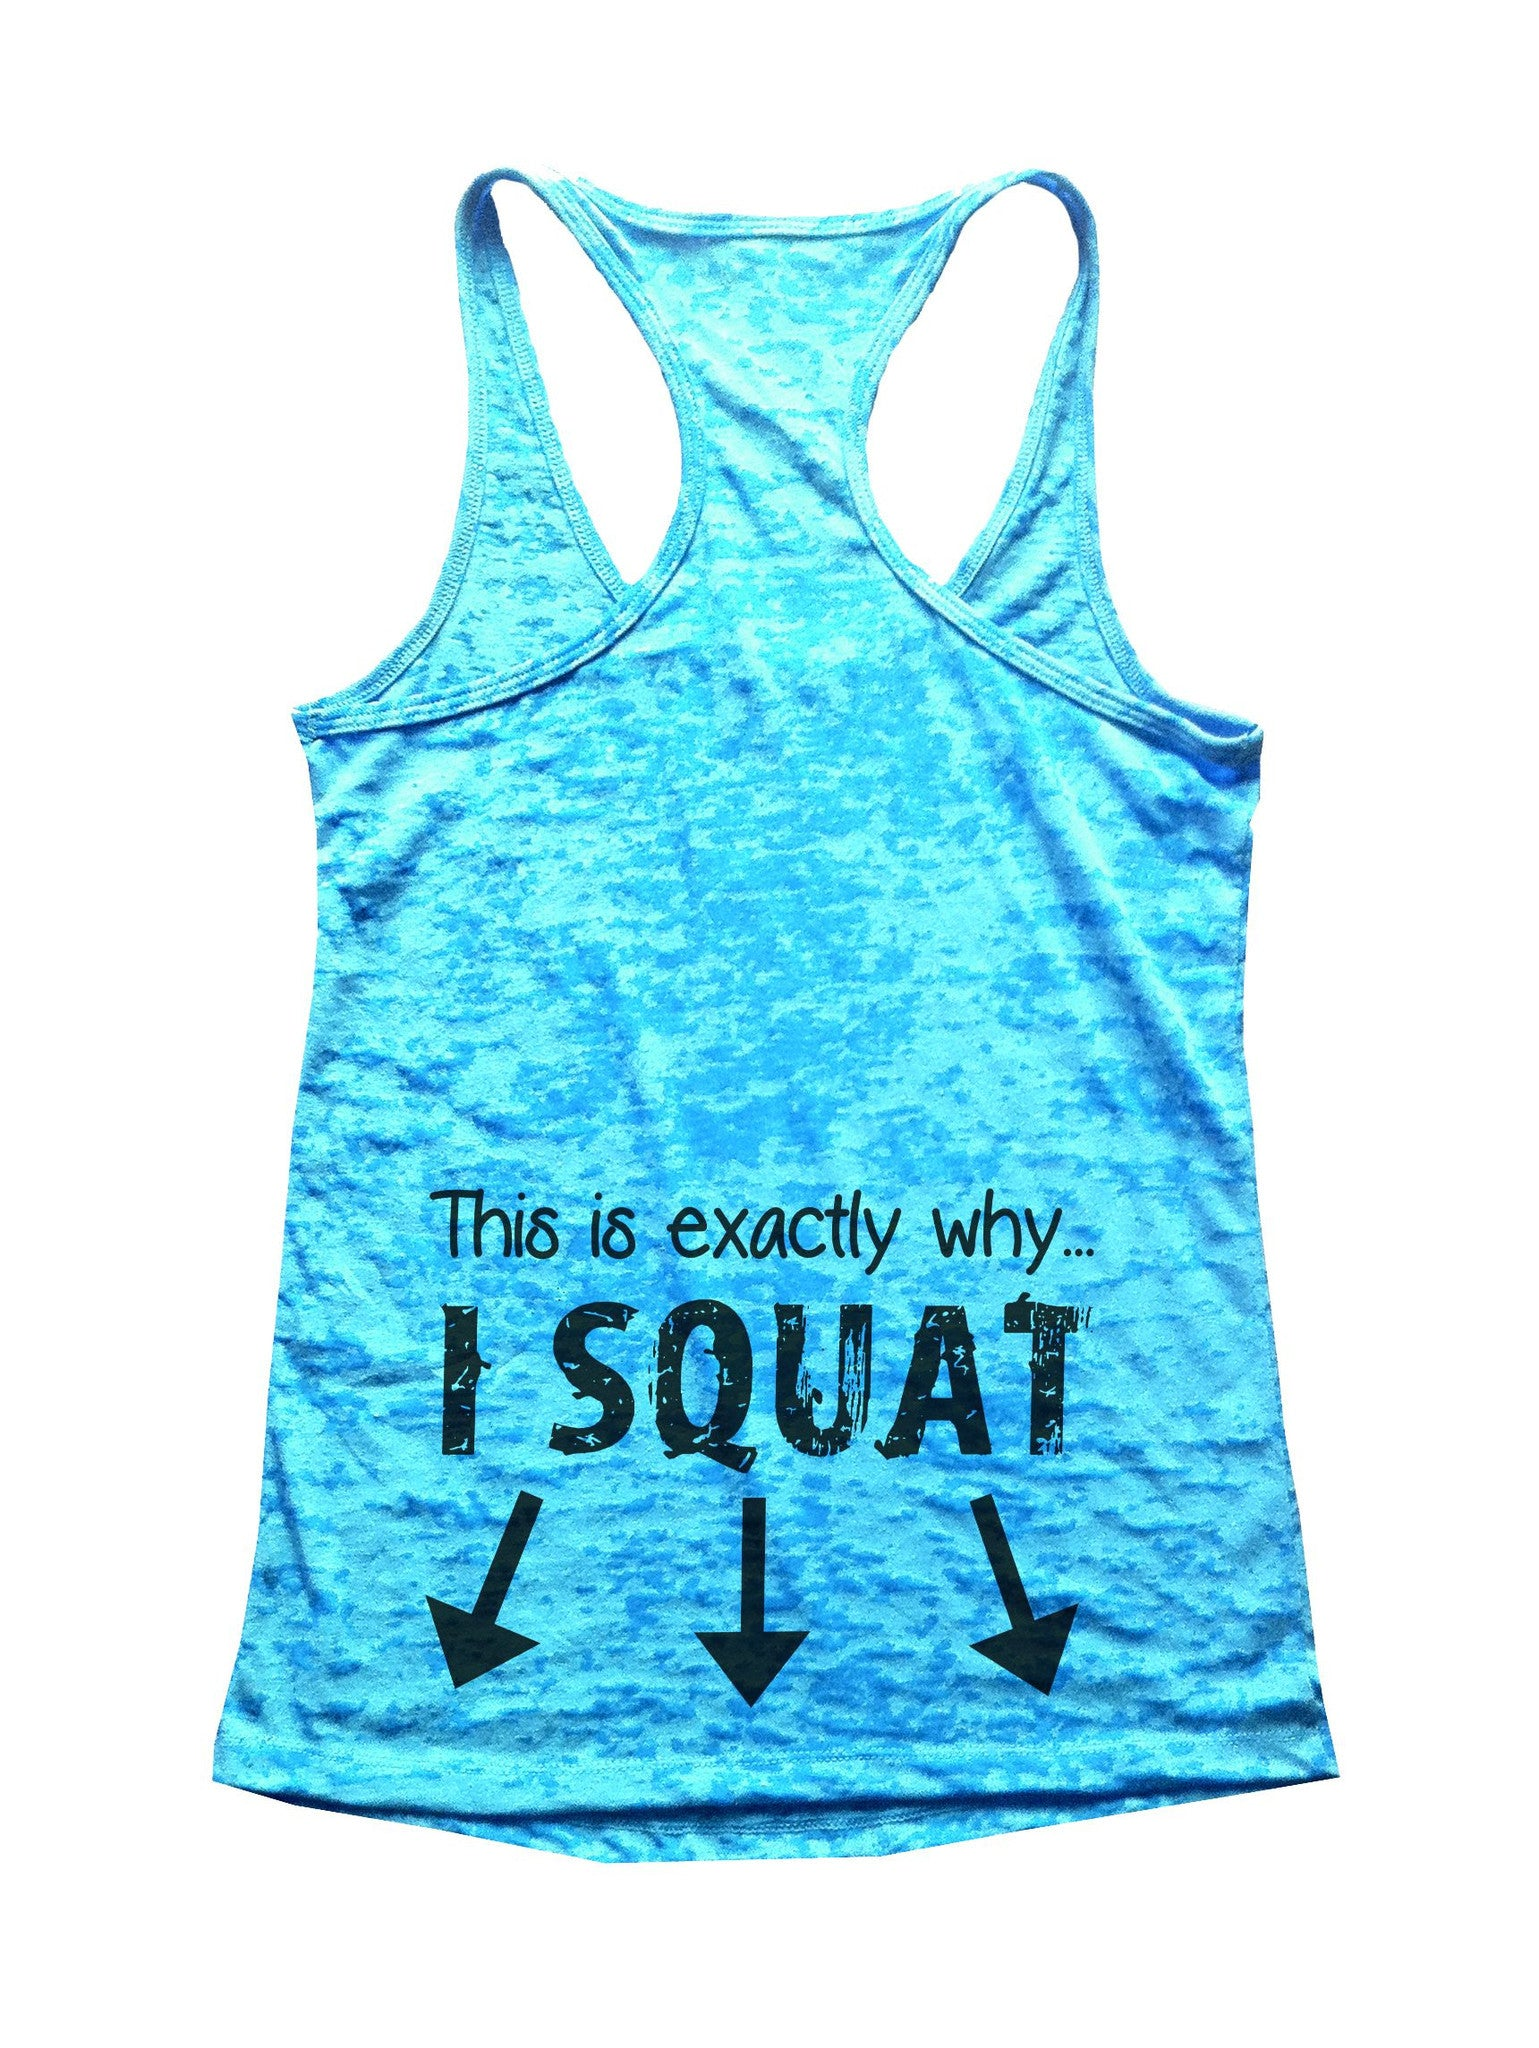 This Is Exactly Why I Squat Burnout Tank Top By BurnoutTankTops.com - 535 - Funny Shirts Tank Tops Burnouts and Triblends  - 1